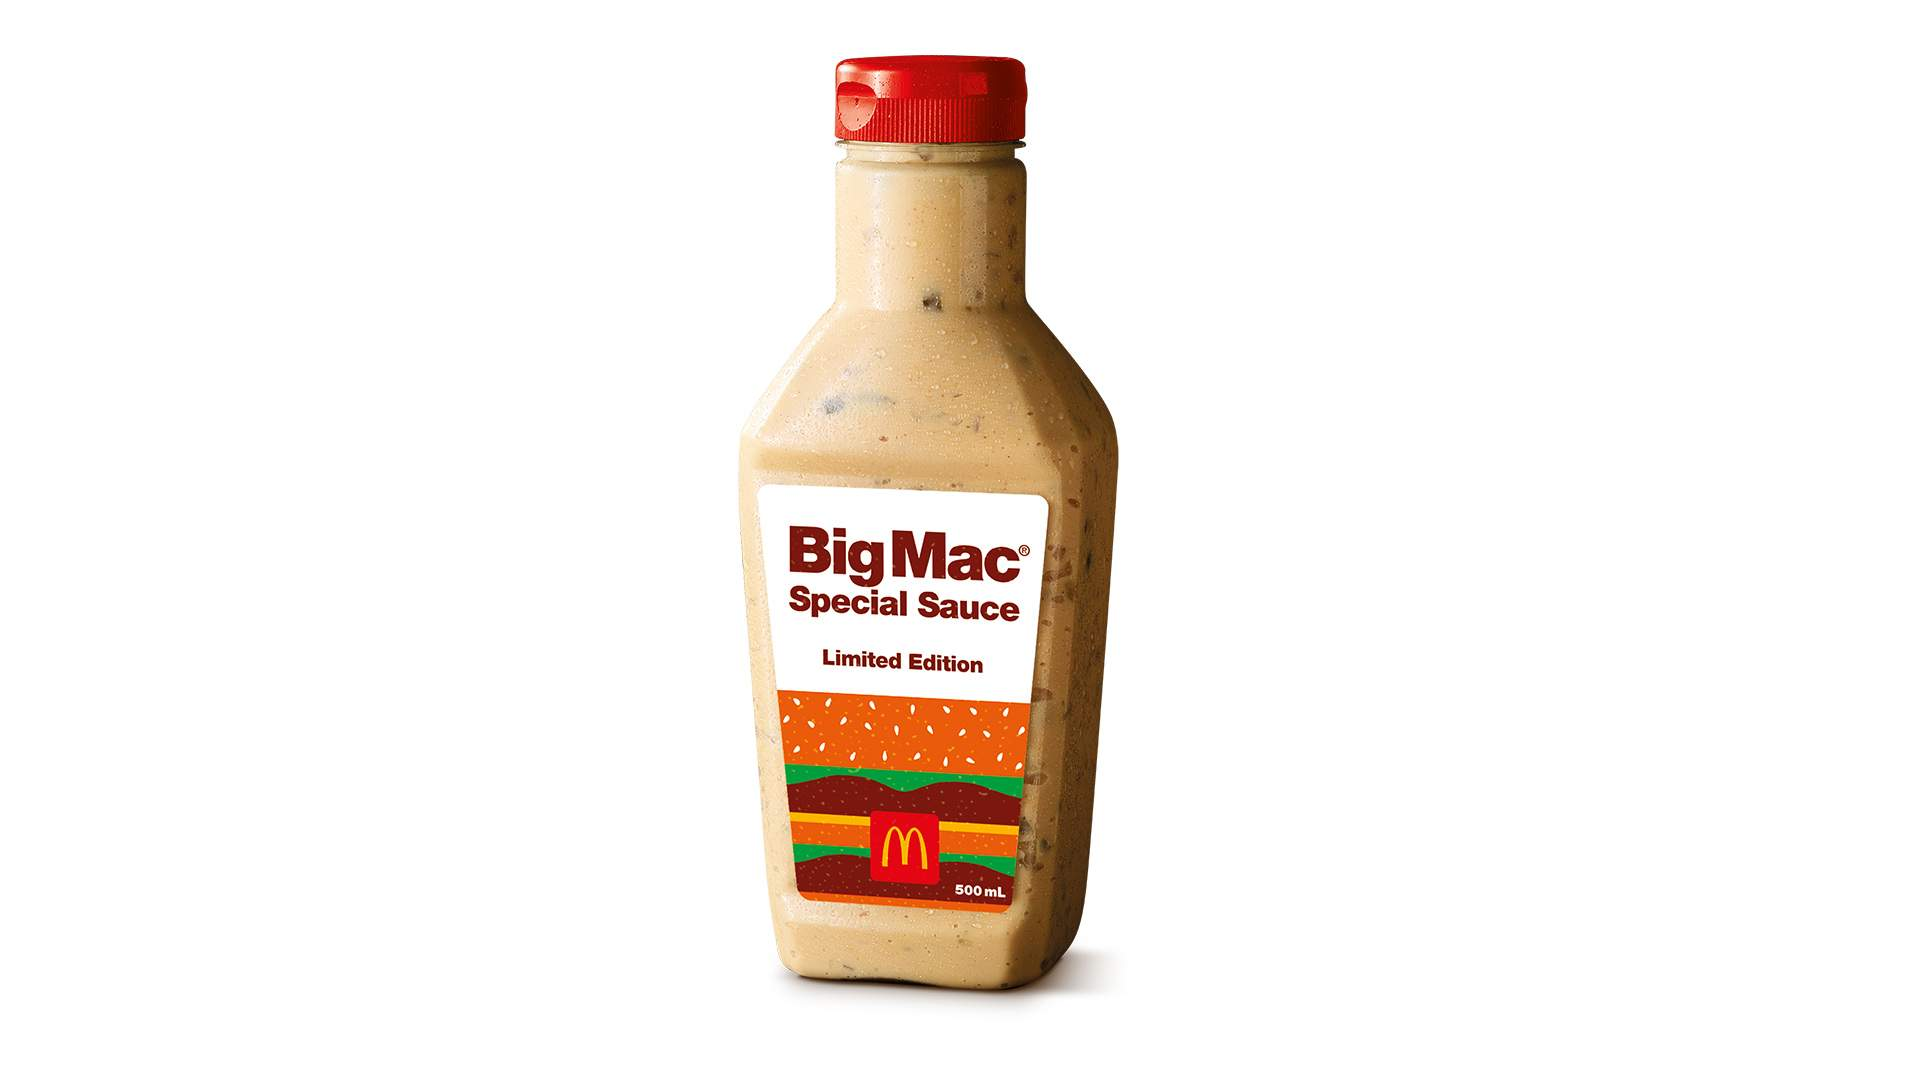 McDonald's Is Selling More Than 144,000 Bottles of Big Mac Special Sauce